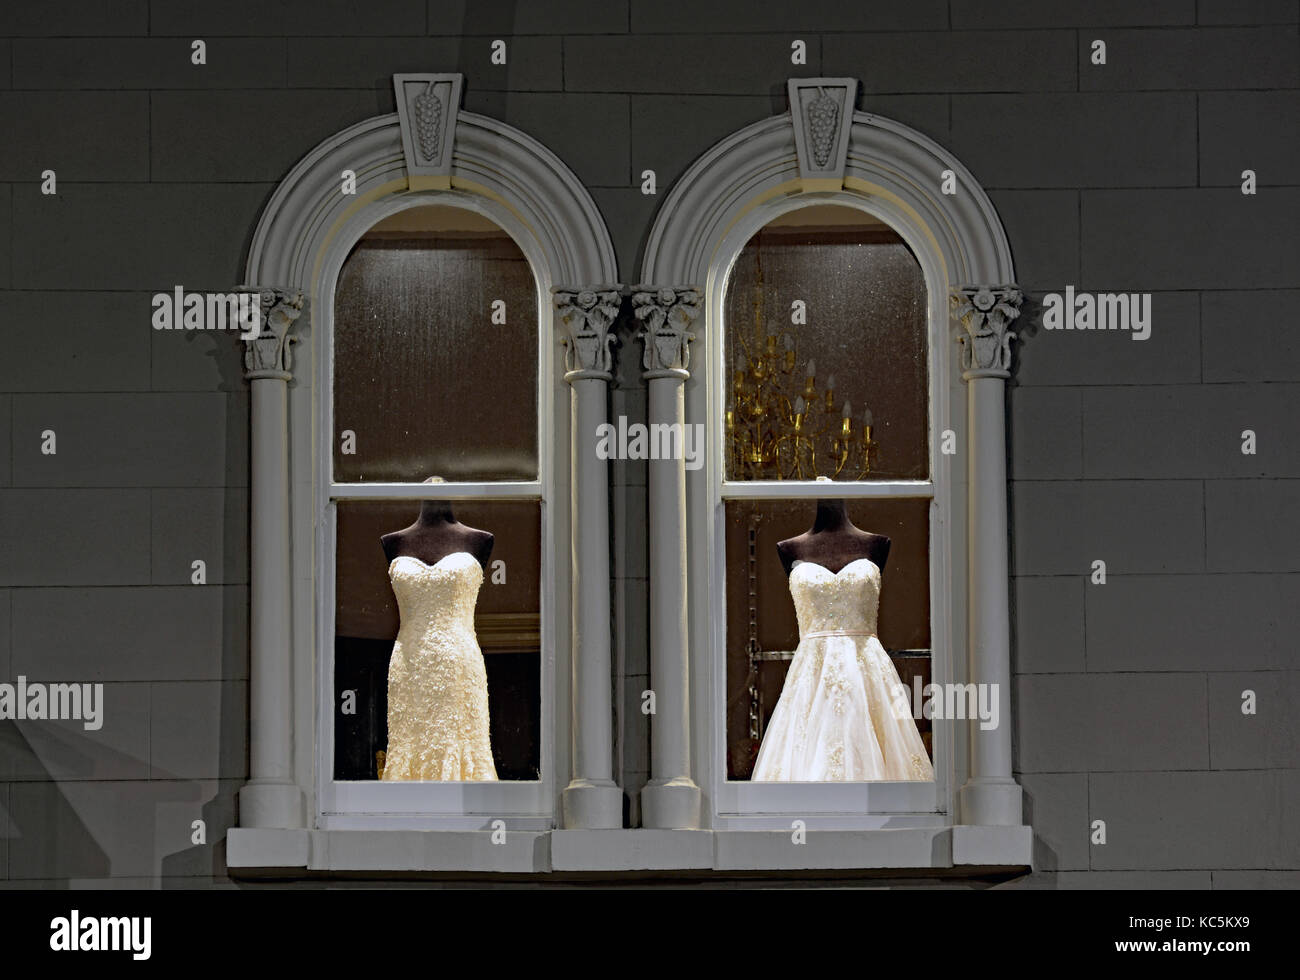 Bridal mannequins in window display Stock Photo